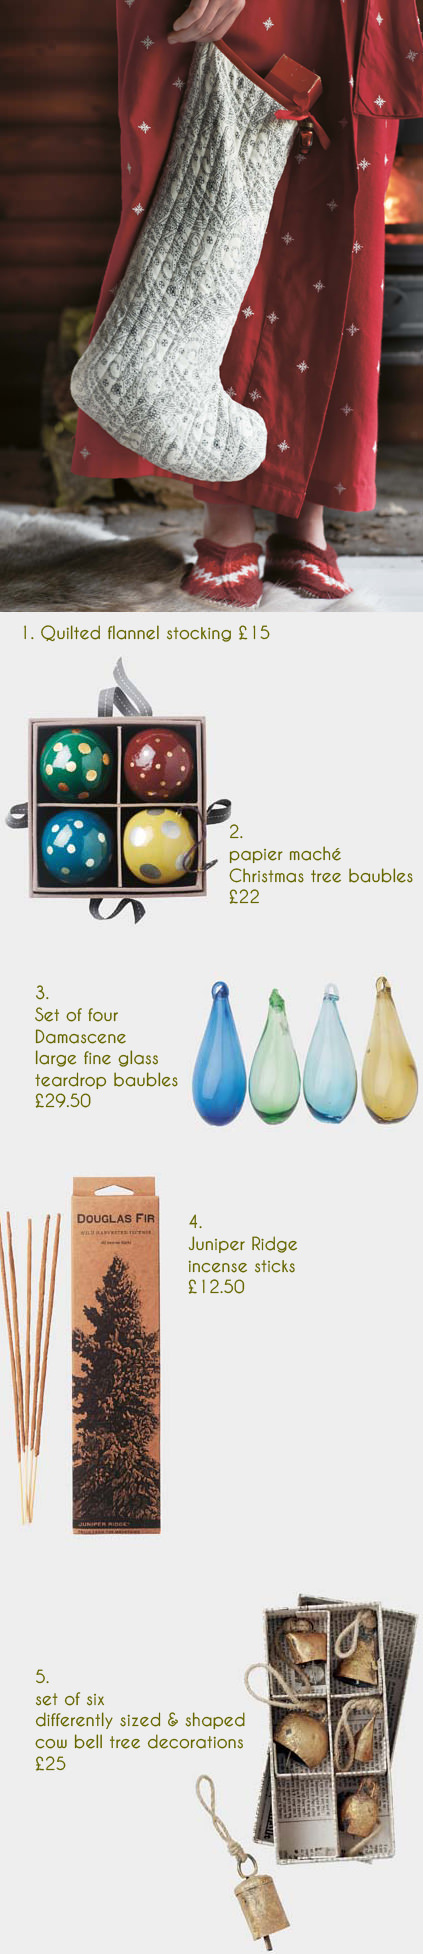 selection of festive Christmas items available on the Toast website